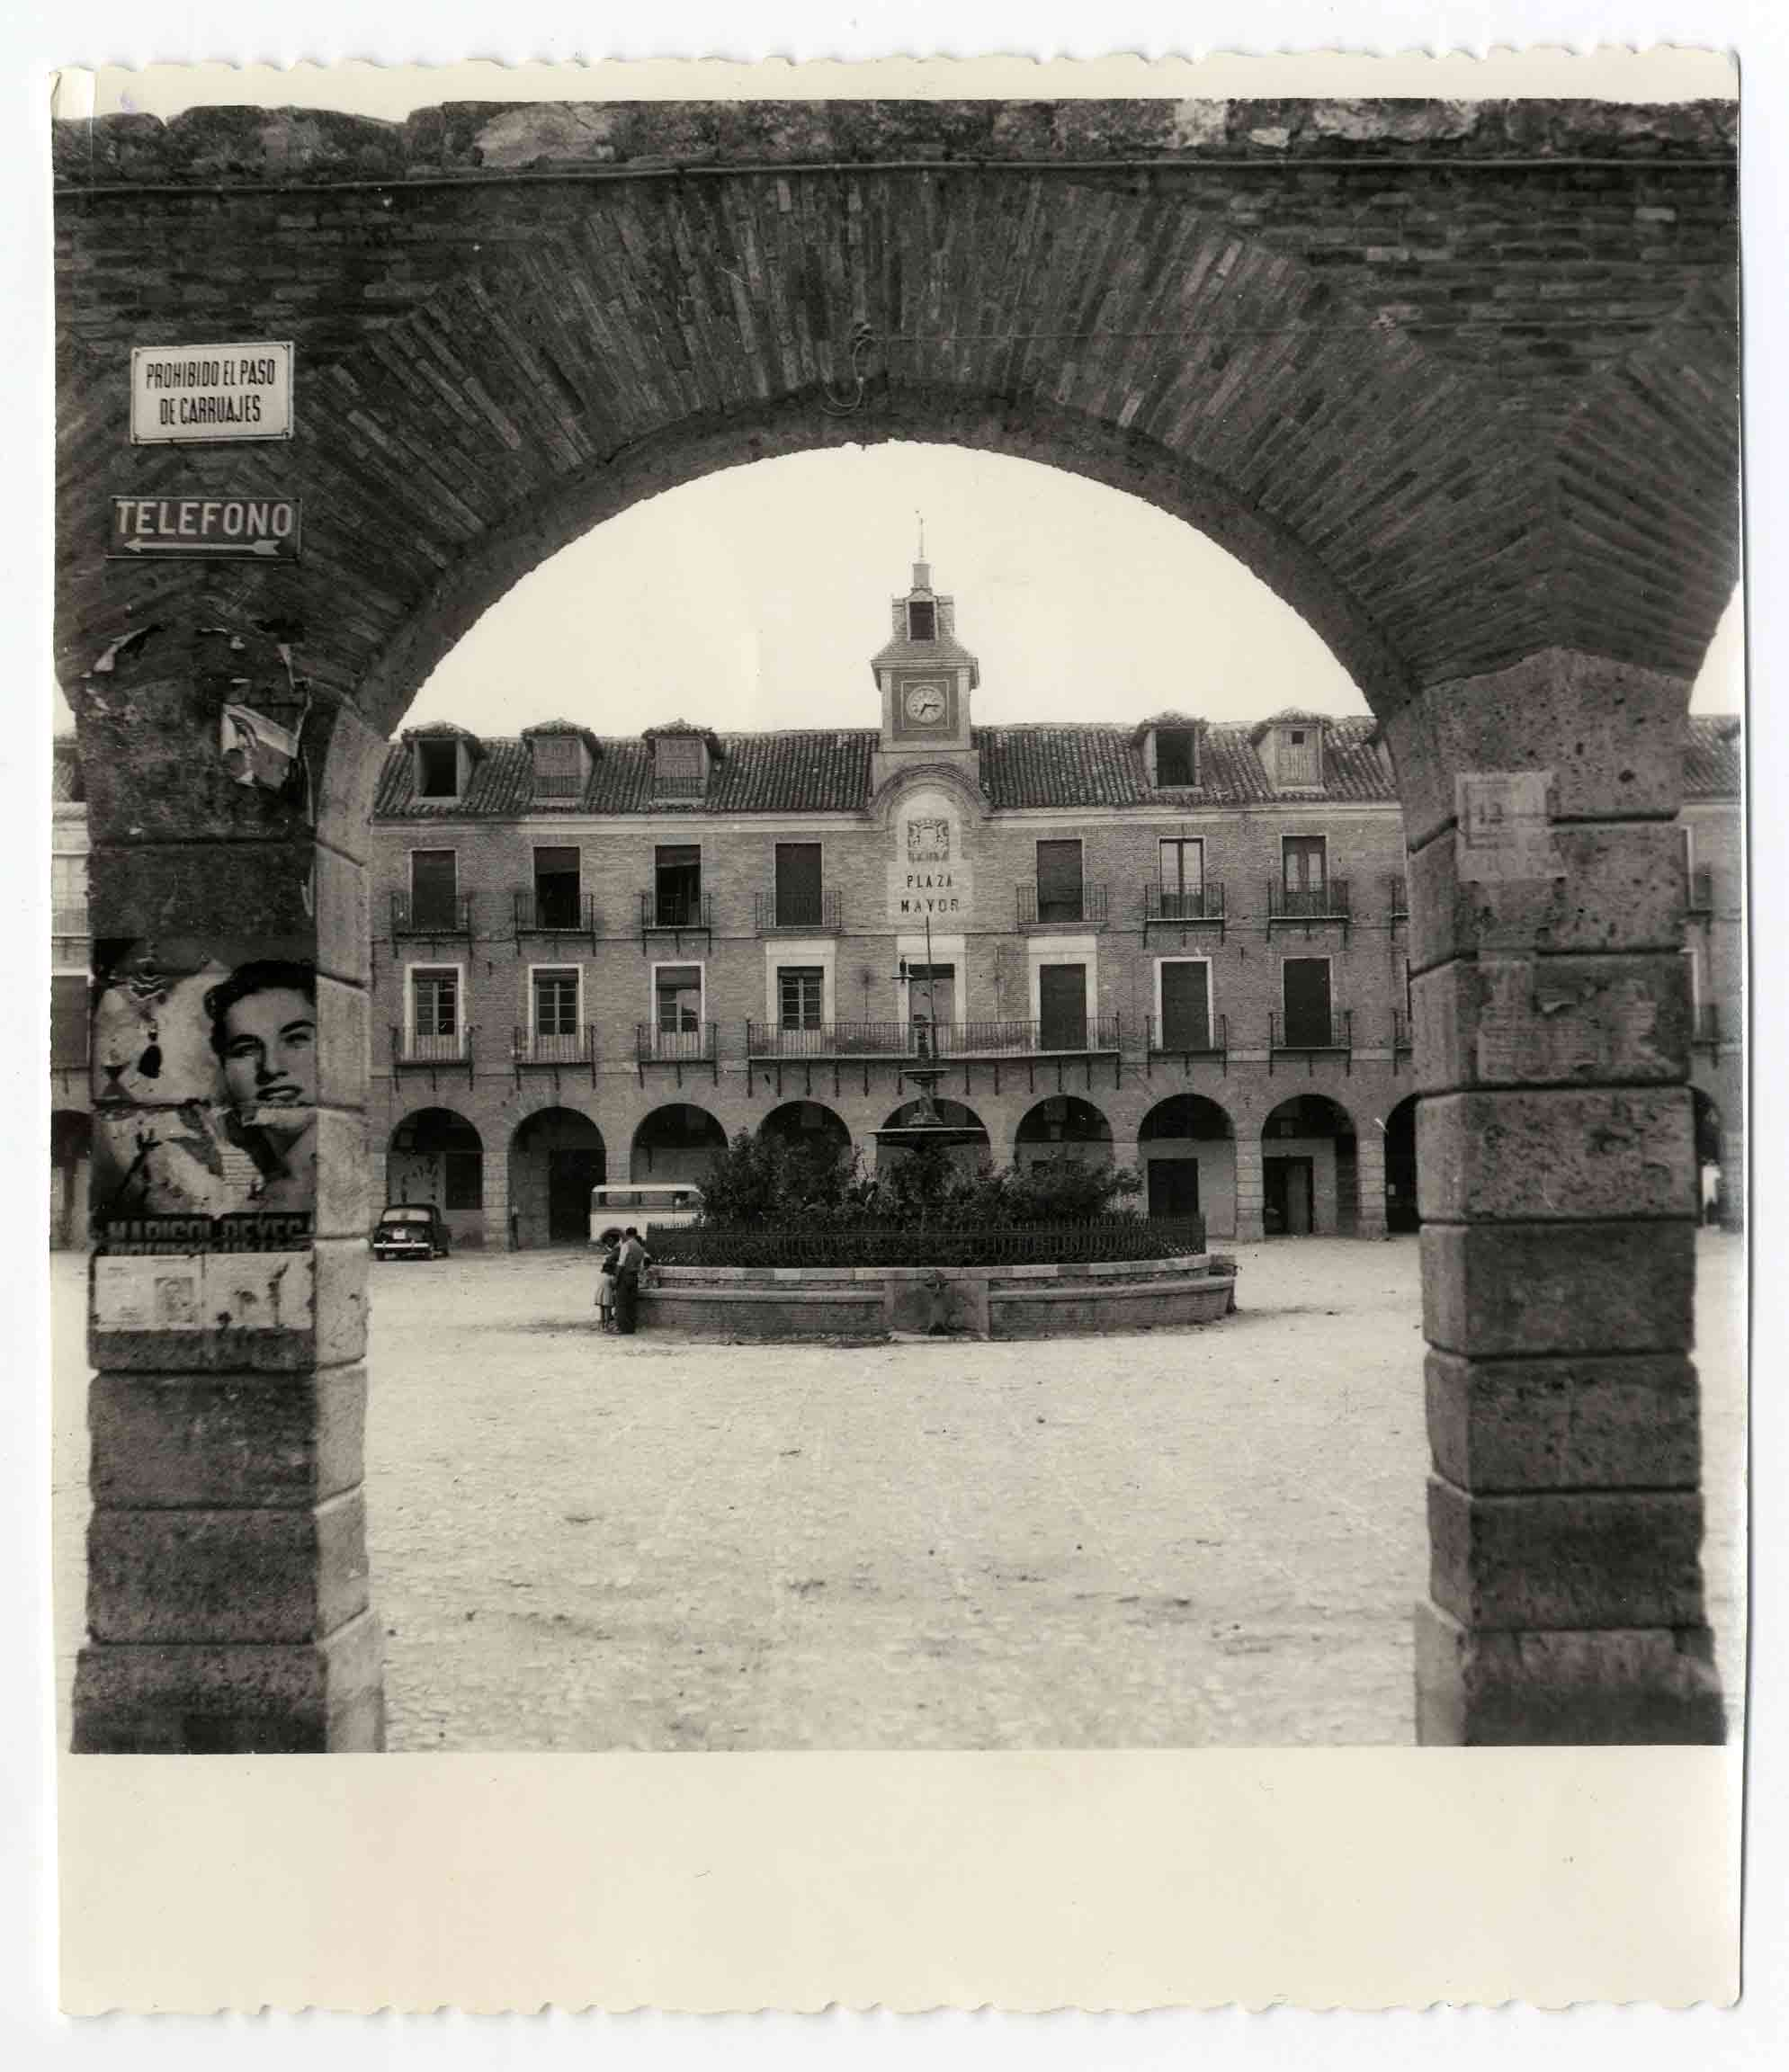 Ocaña. Plaza Mayor. 1960 (P-633)